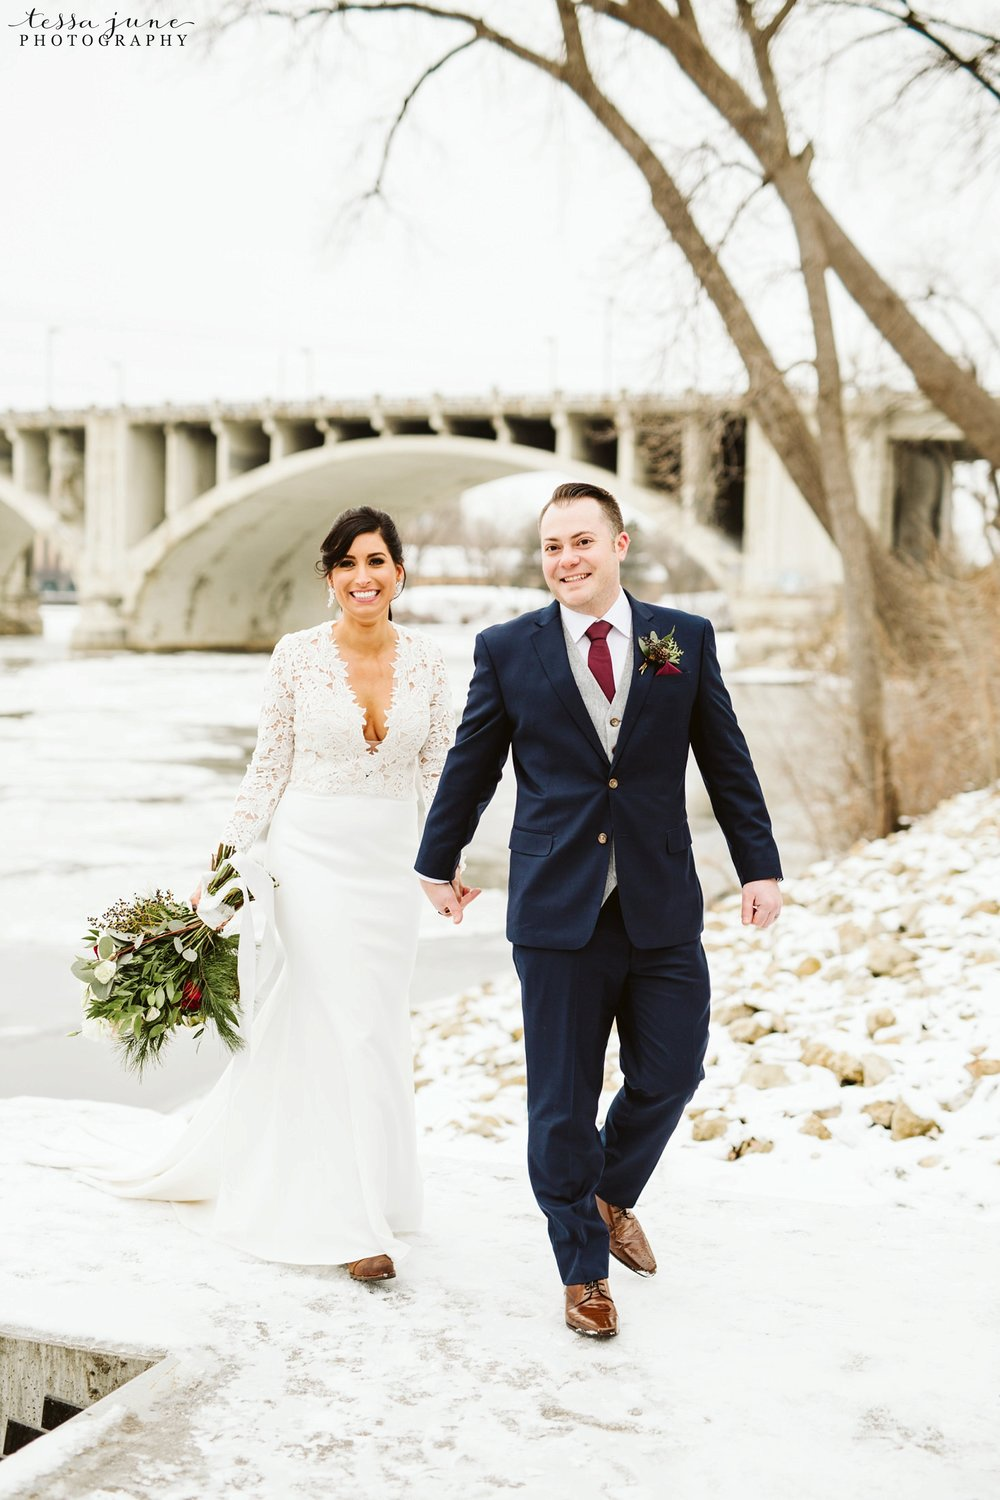 minneapolis-event-center-winter-romantic-snow-wedding-december-104.jpg